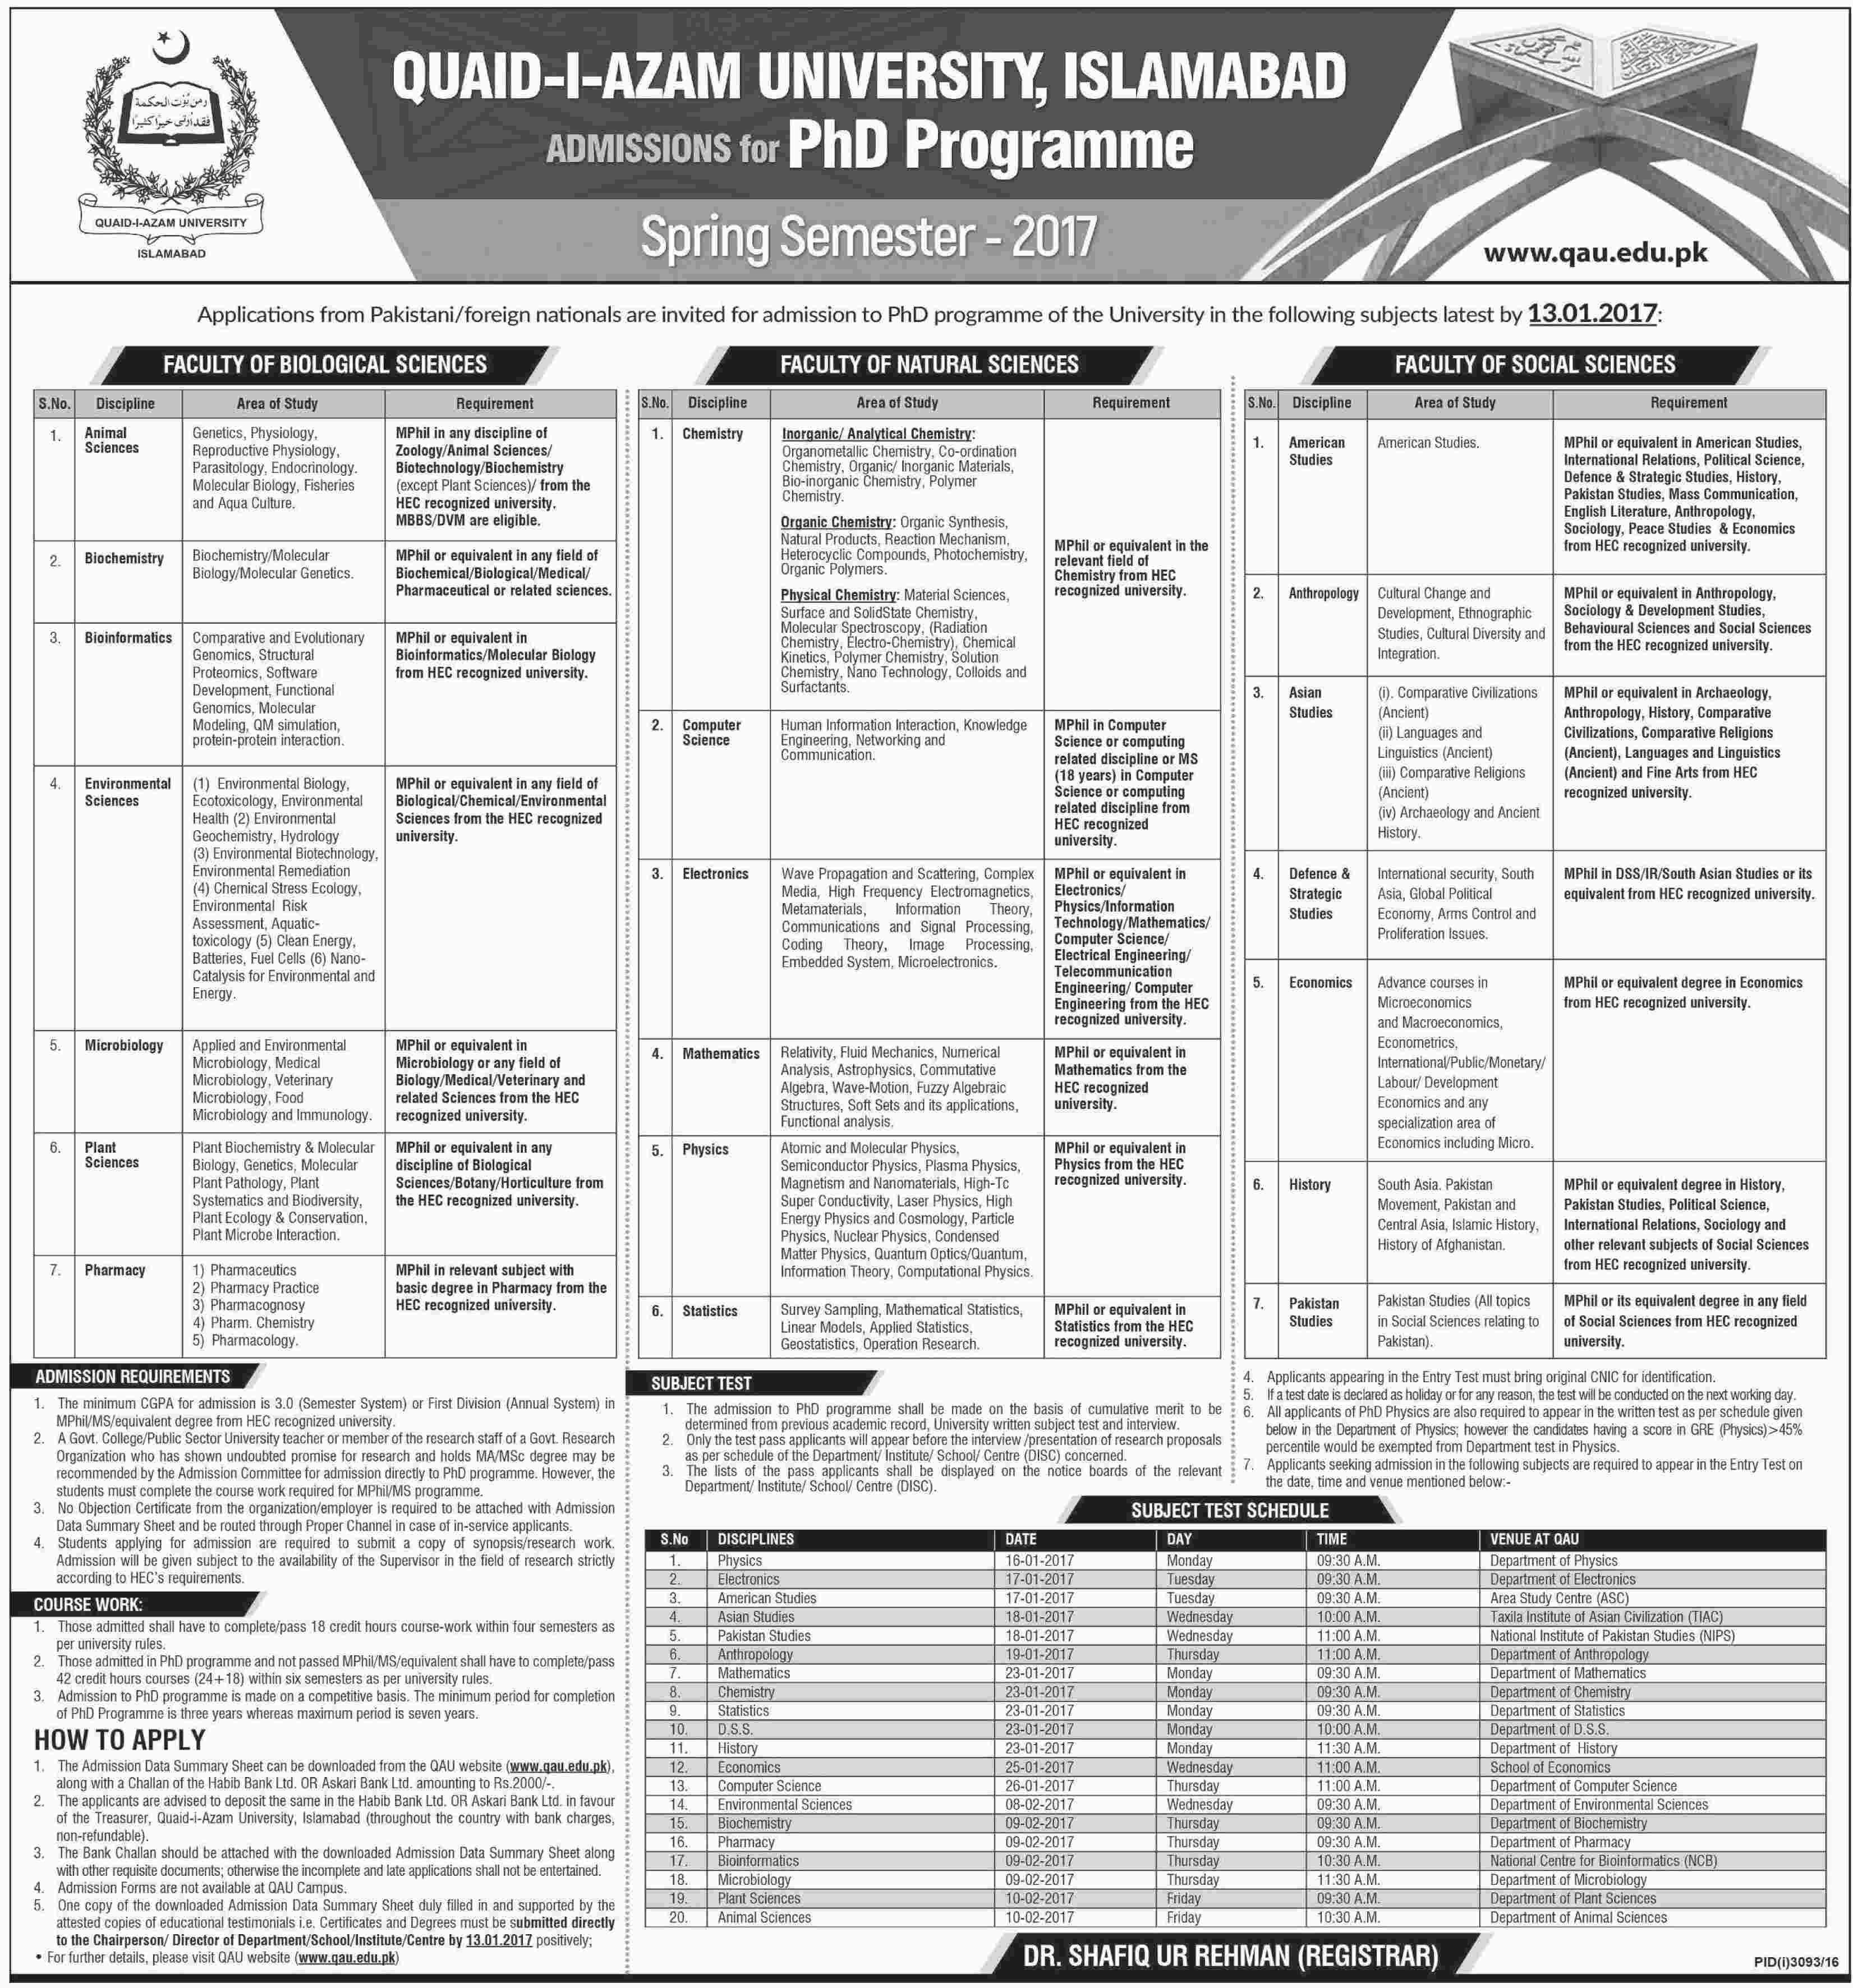 Quaid-i-Azam University Islamabad MS/M.Phil, PhD Admissions 2017 Spring Form, Last Date, Entry Test Schedule